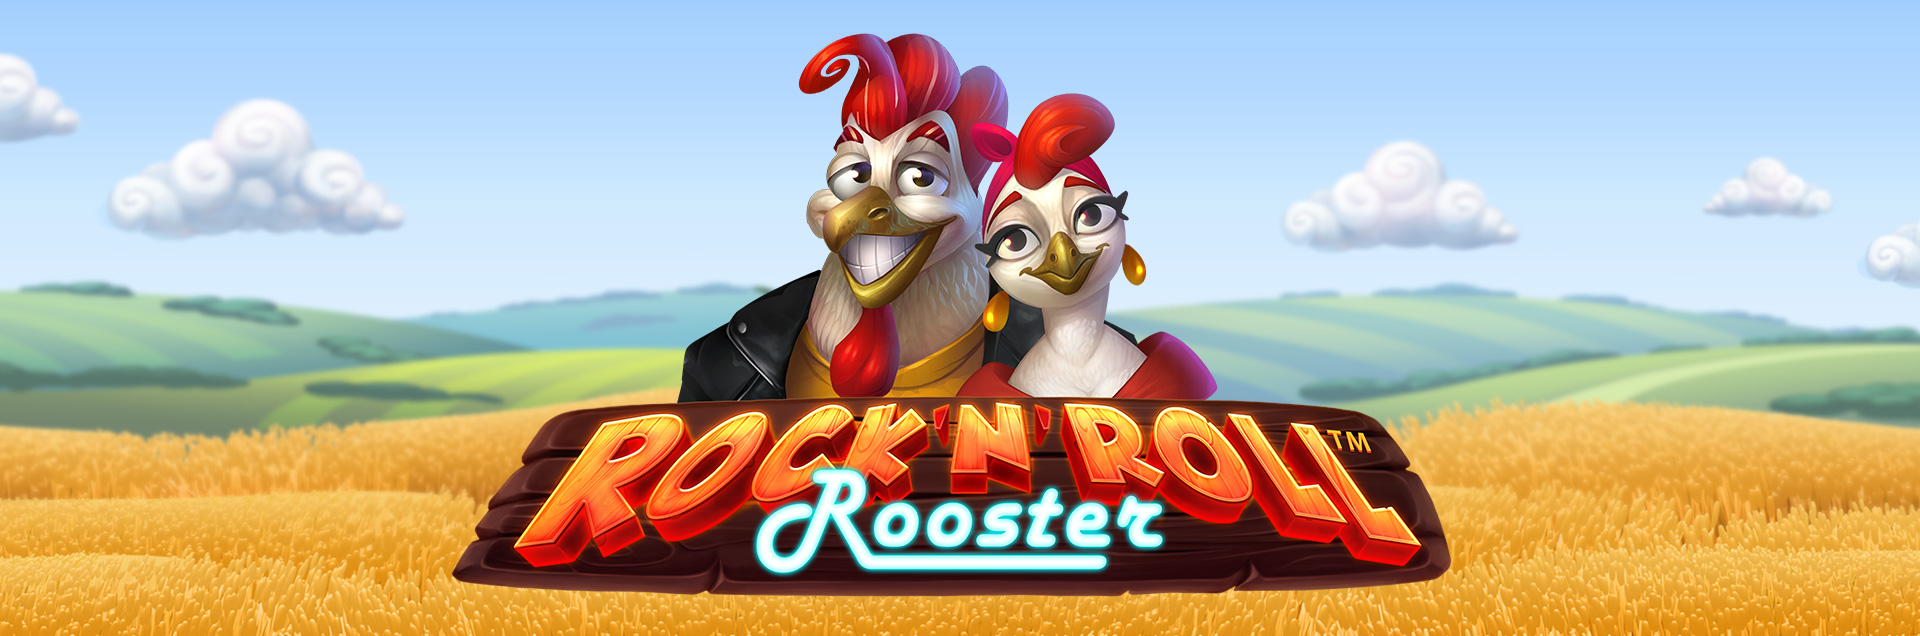 Rock n Roll Rooster games header